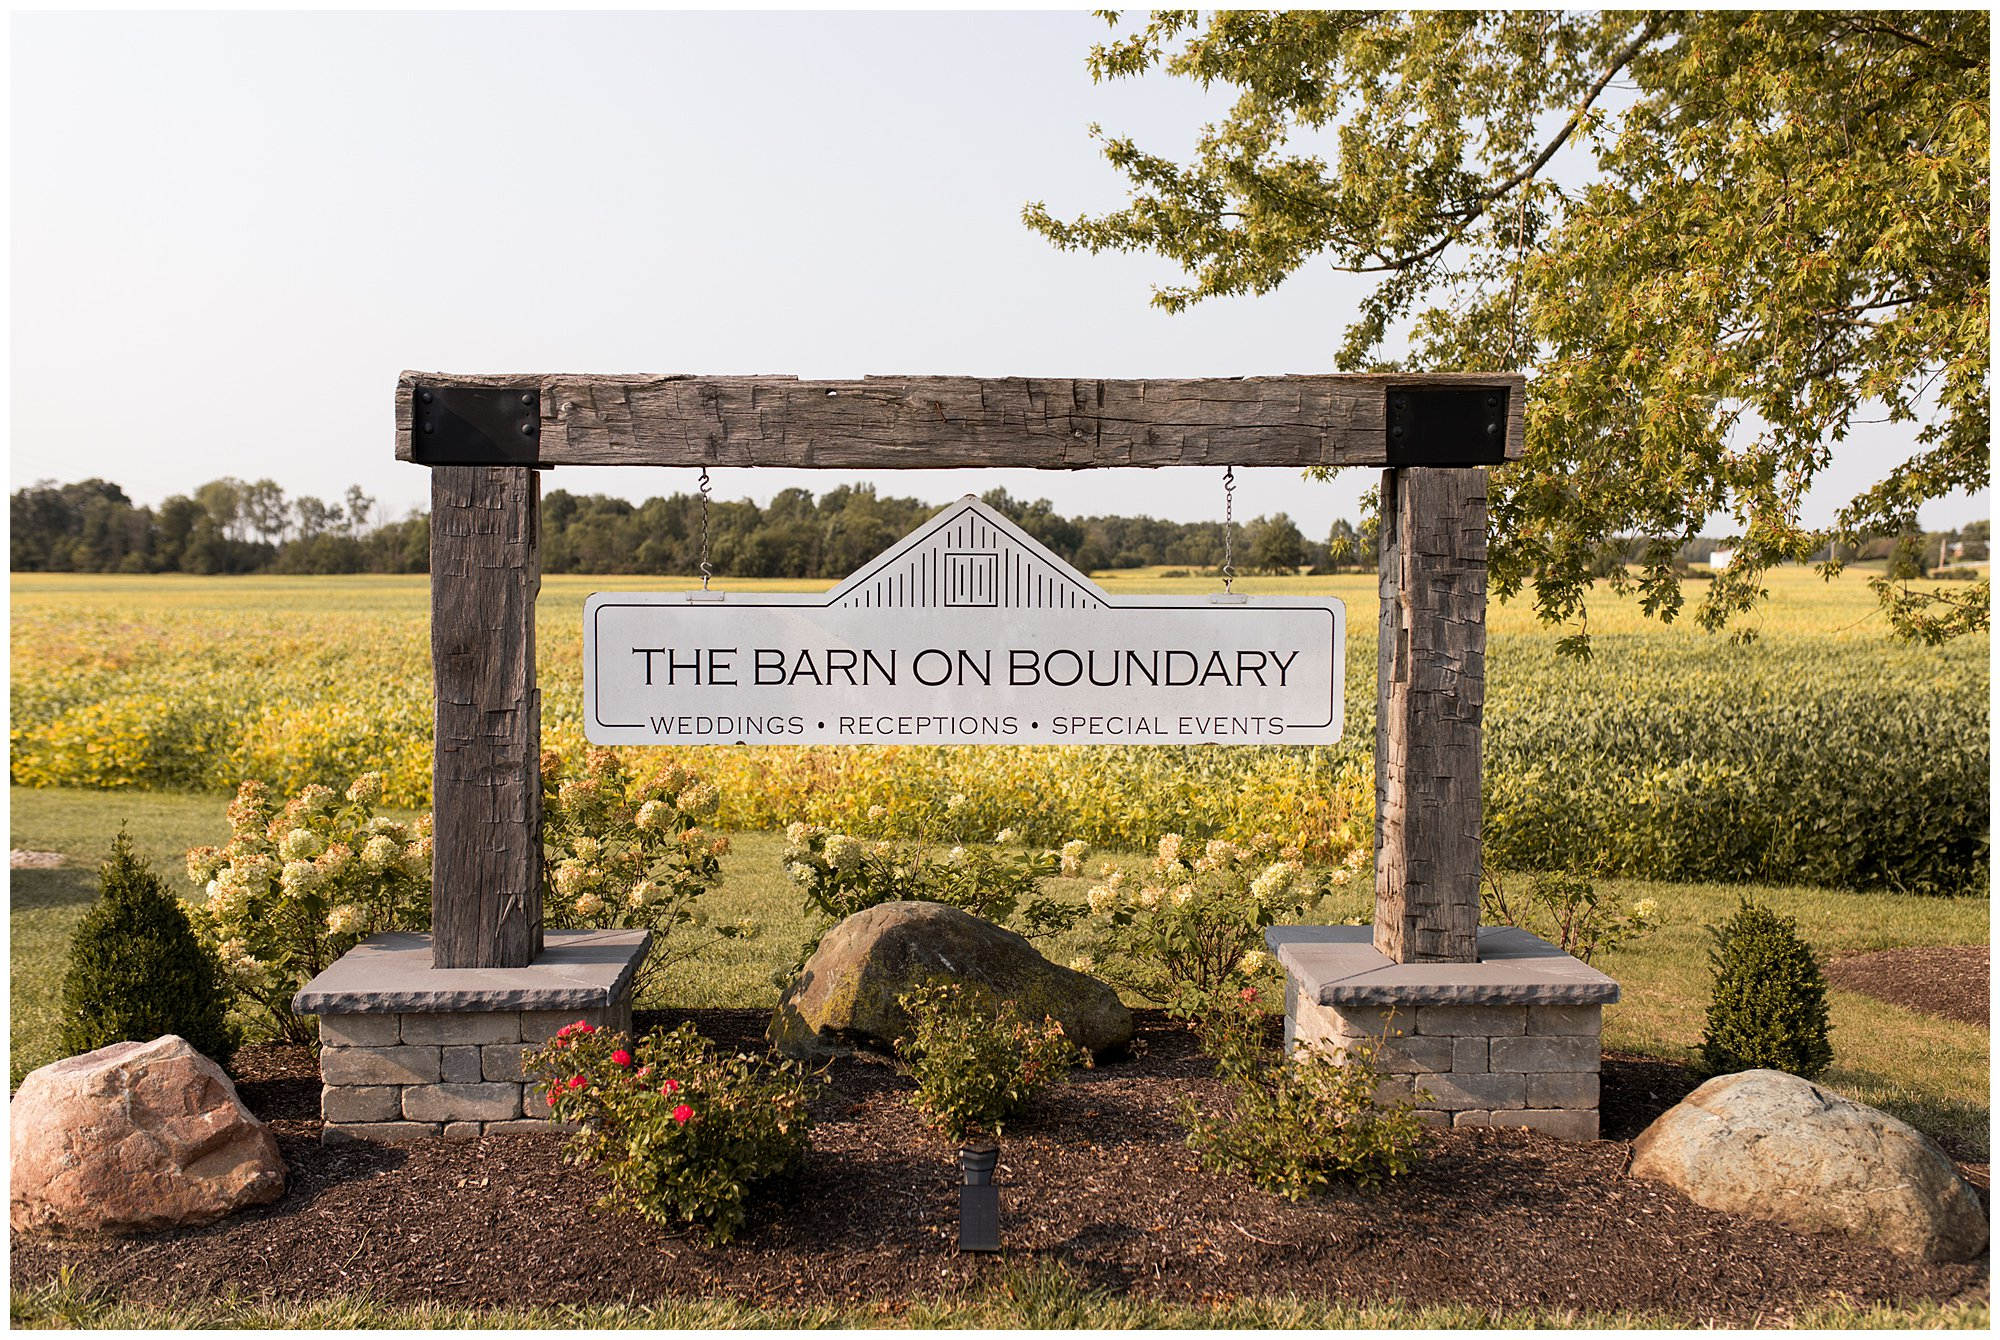 The Barn on Boundary in Eaton Indiana